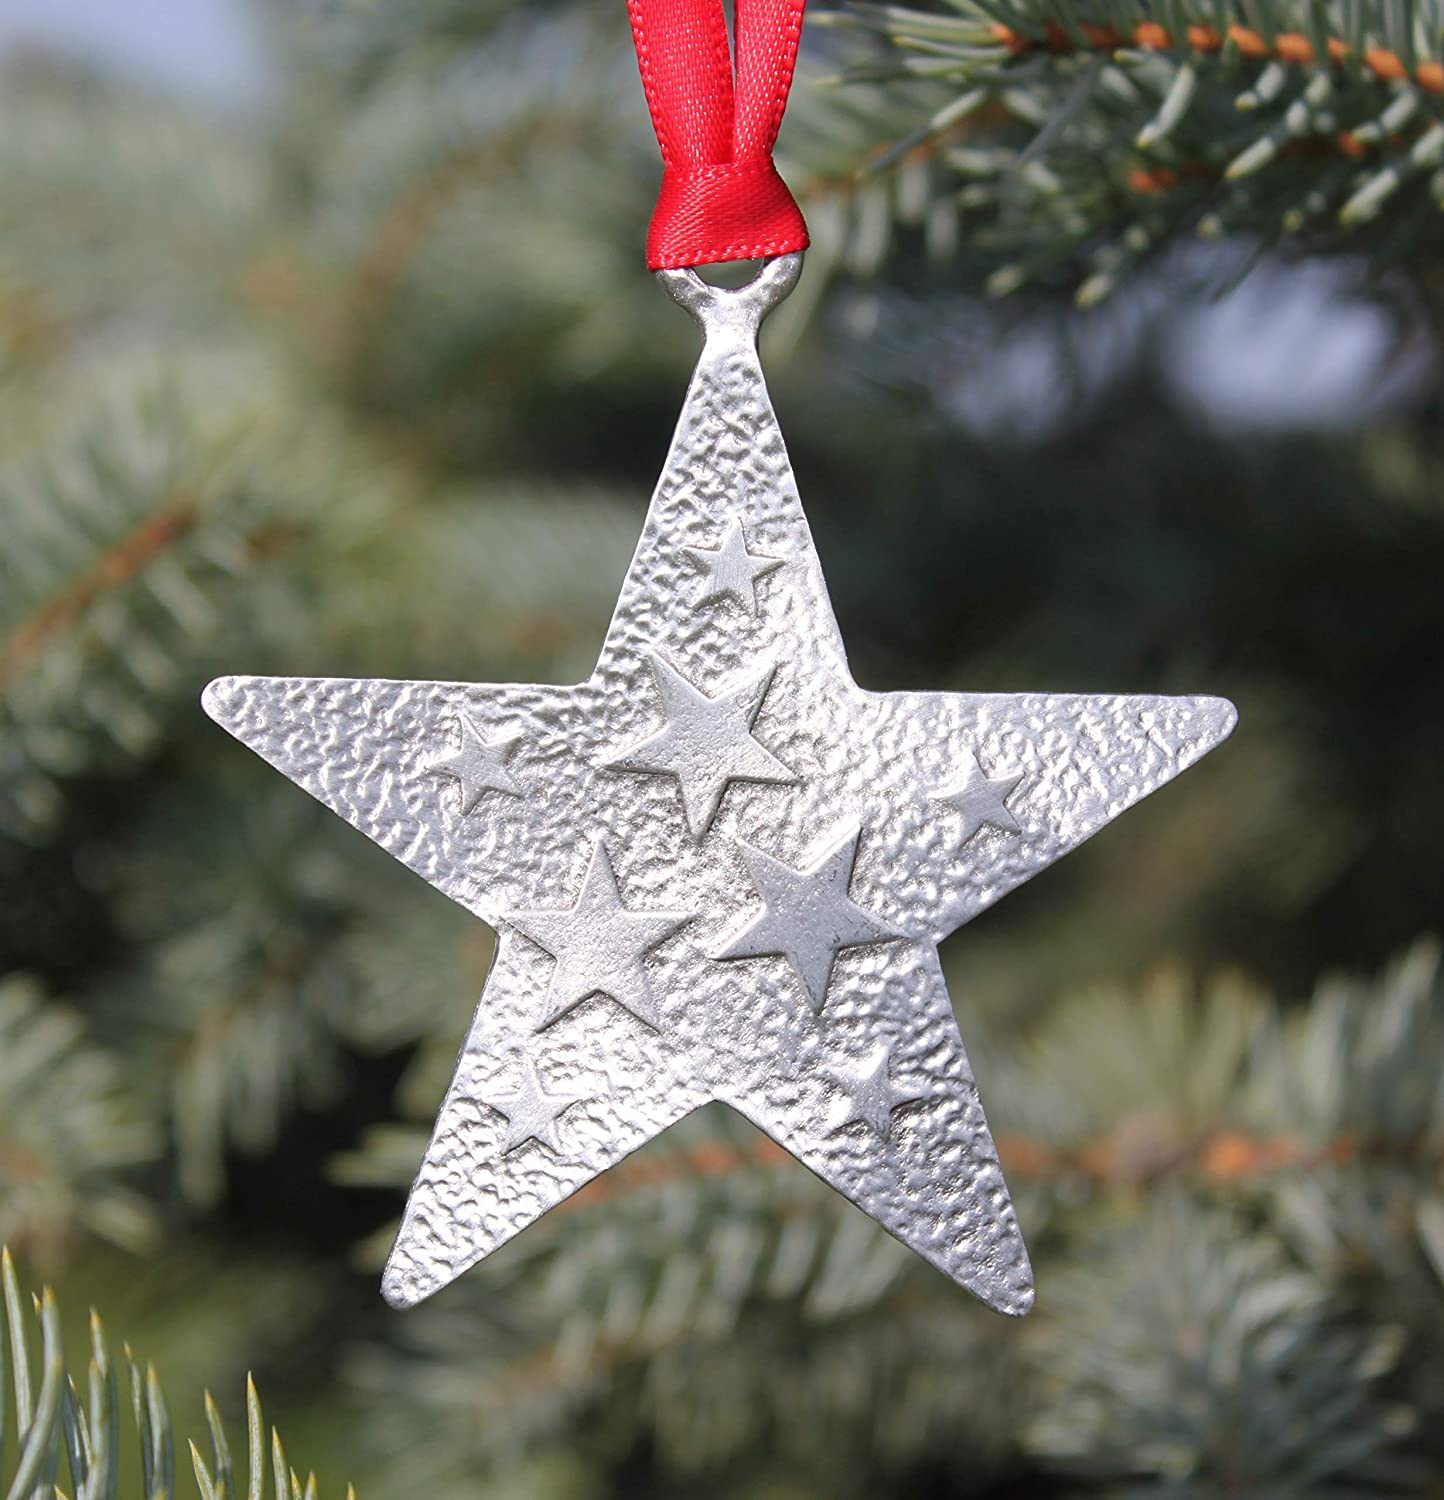 Hastings Pewter Company Large Lead Free Pewter Star Ornament Made in Michigan decoration